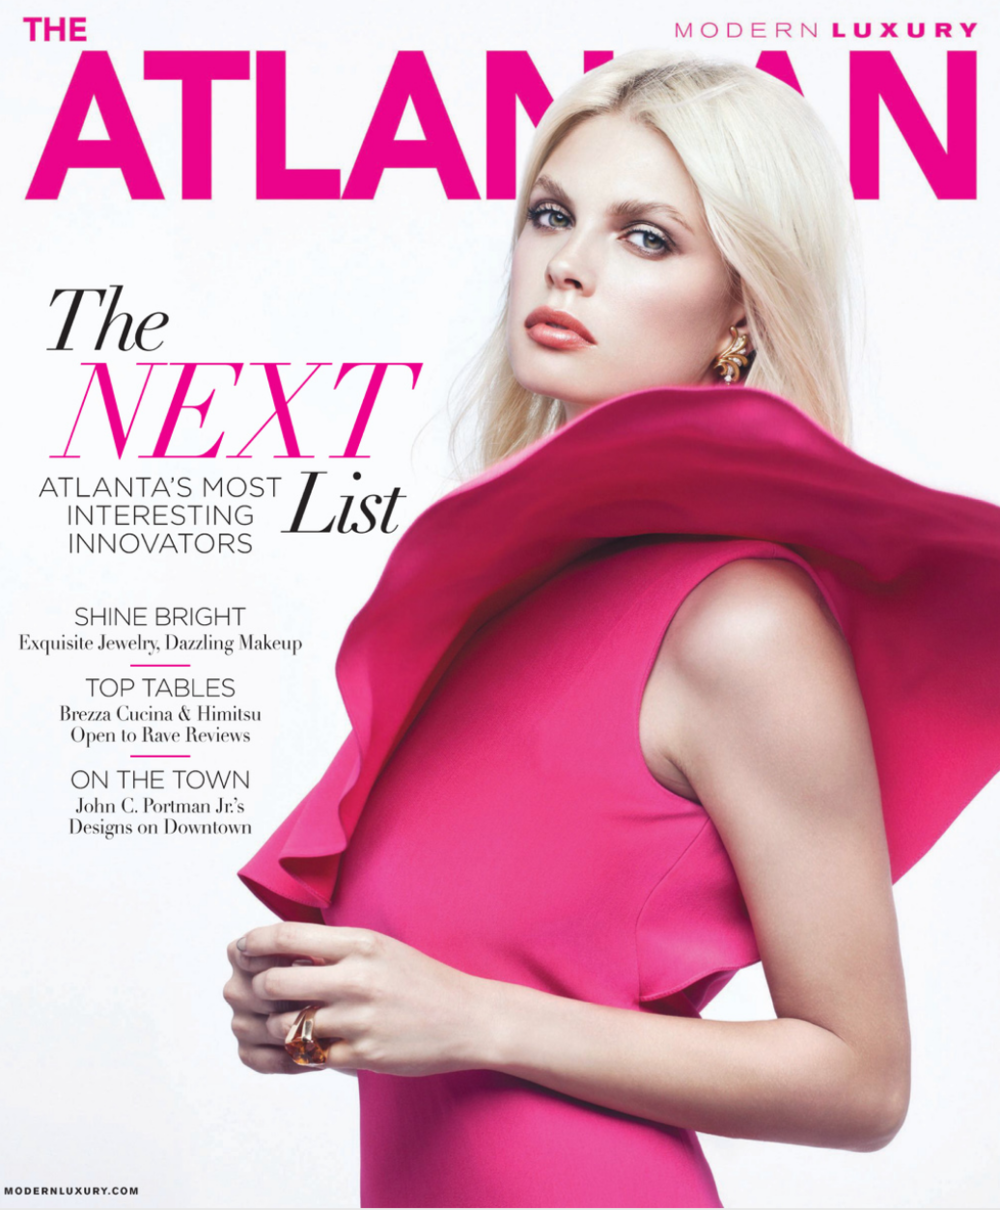 The Atlantan Magazine | December 11, 2015